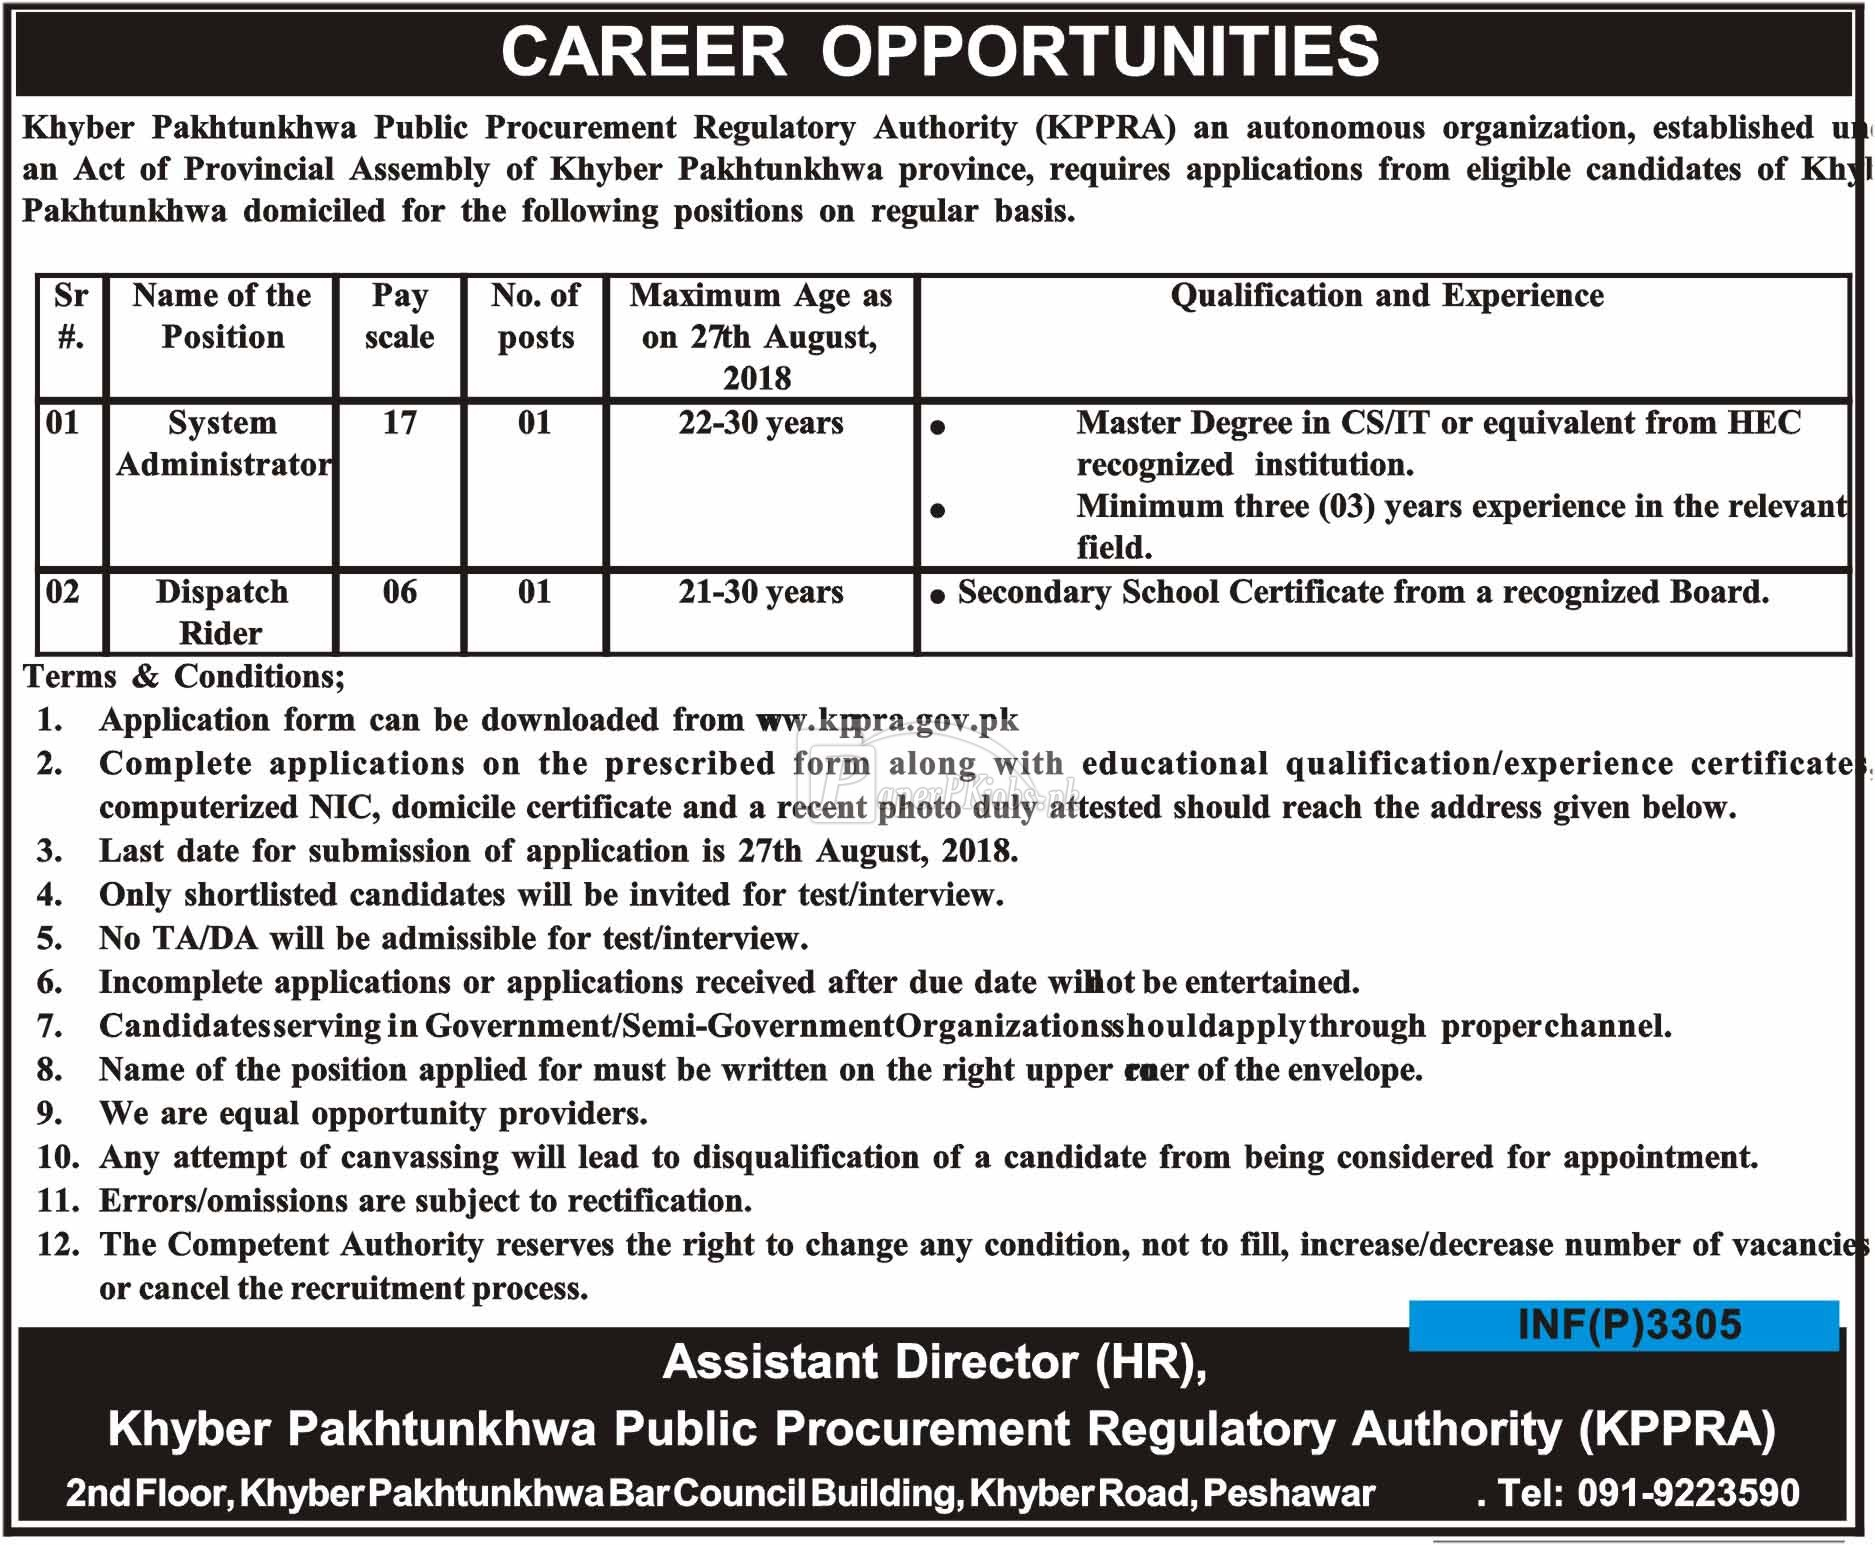 Khyber Pakhtunkhwa Public Procurement Regulatory Authority KPPRA Jobs 2018